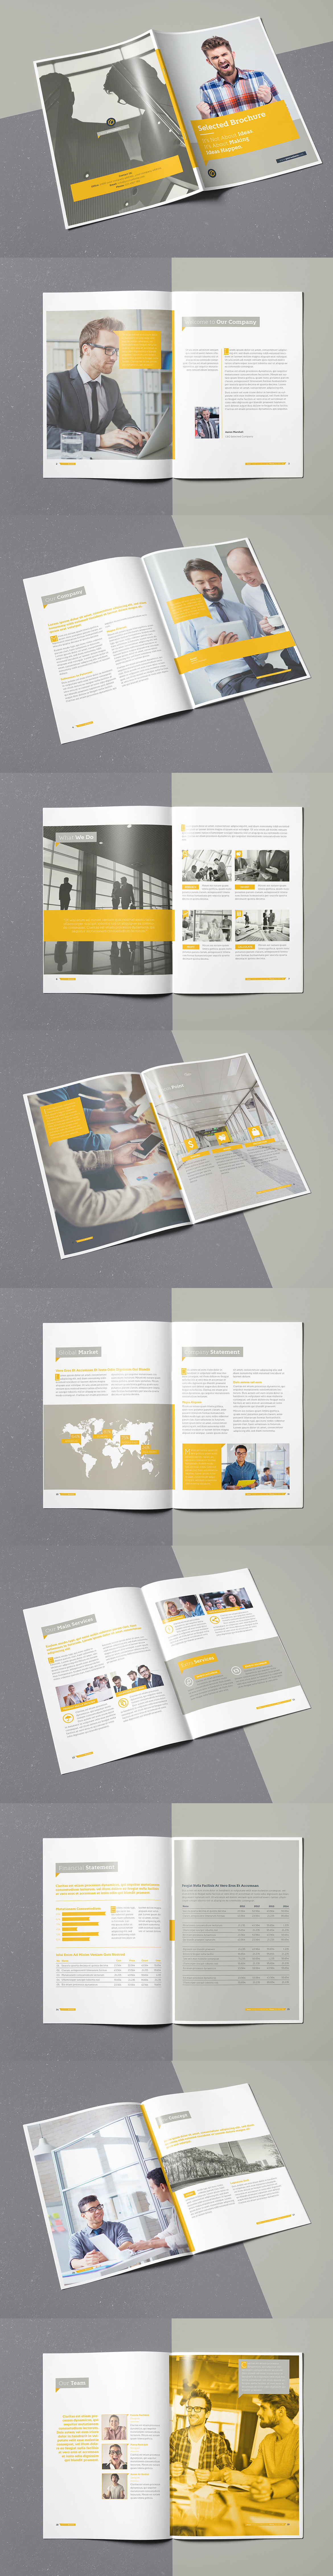 Selected Brochure 20 Pages A4 Template InDesign INDD | Brochure ...